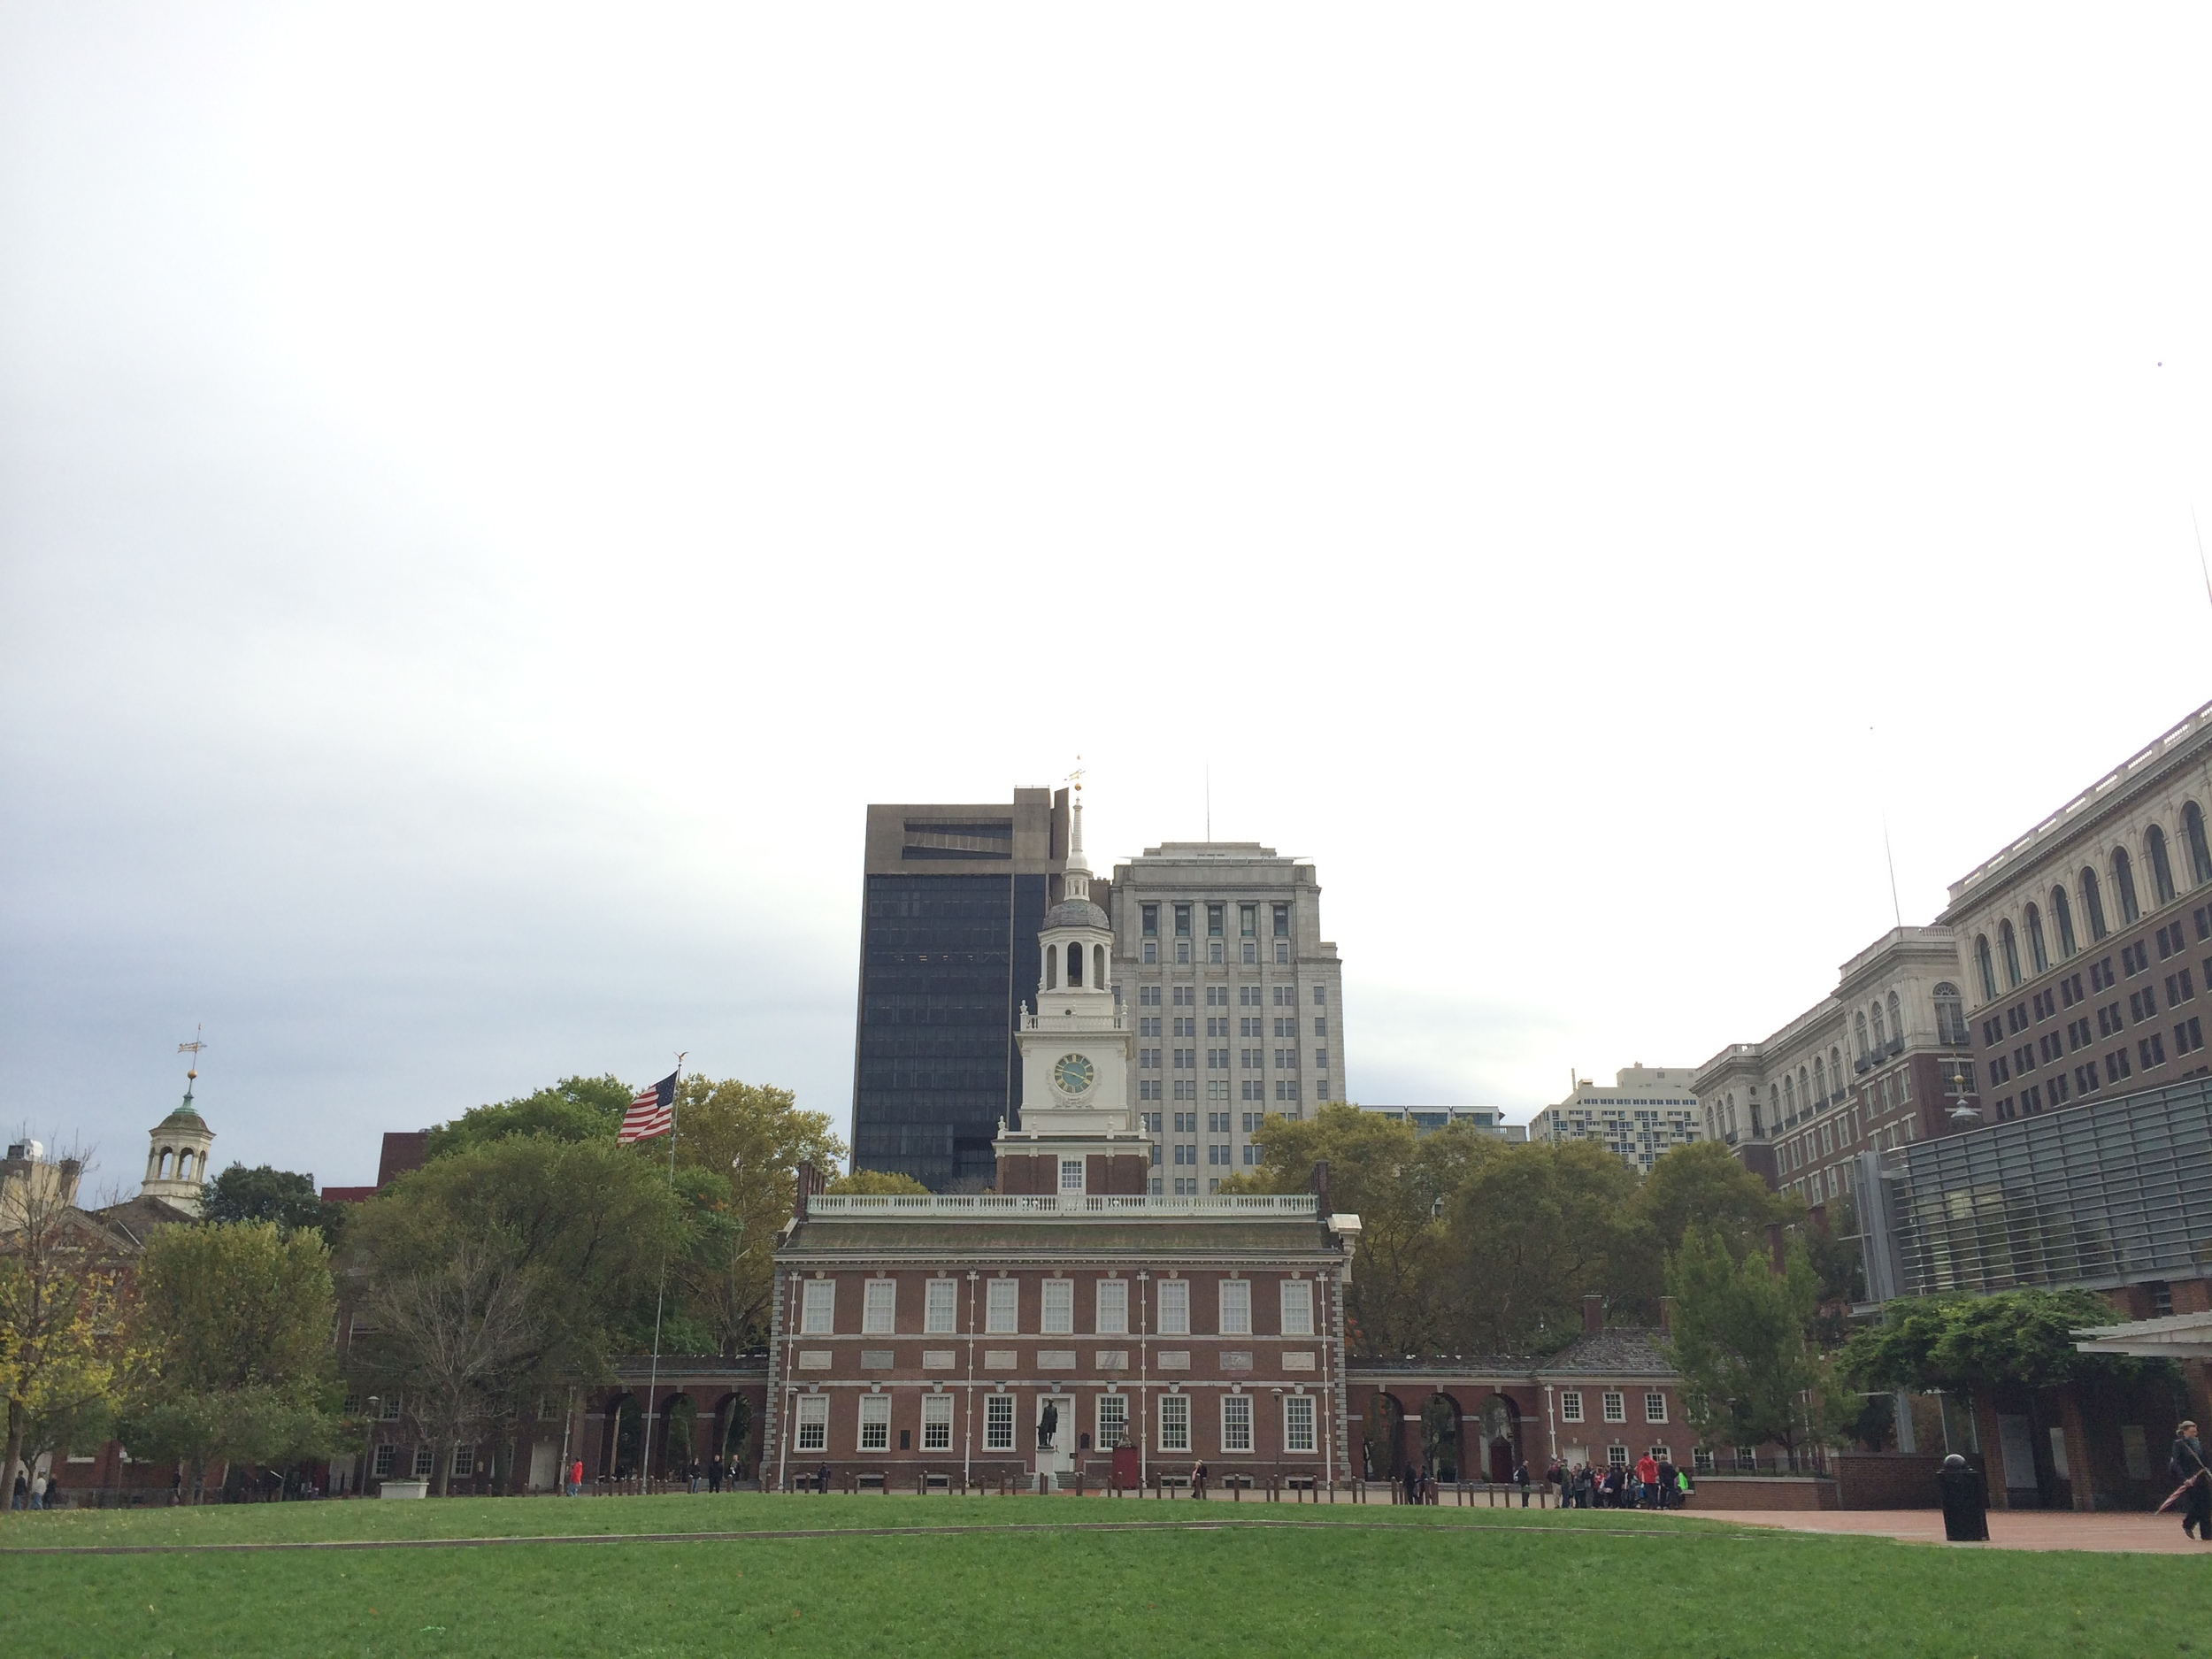 The Independence Hall